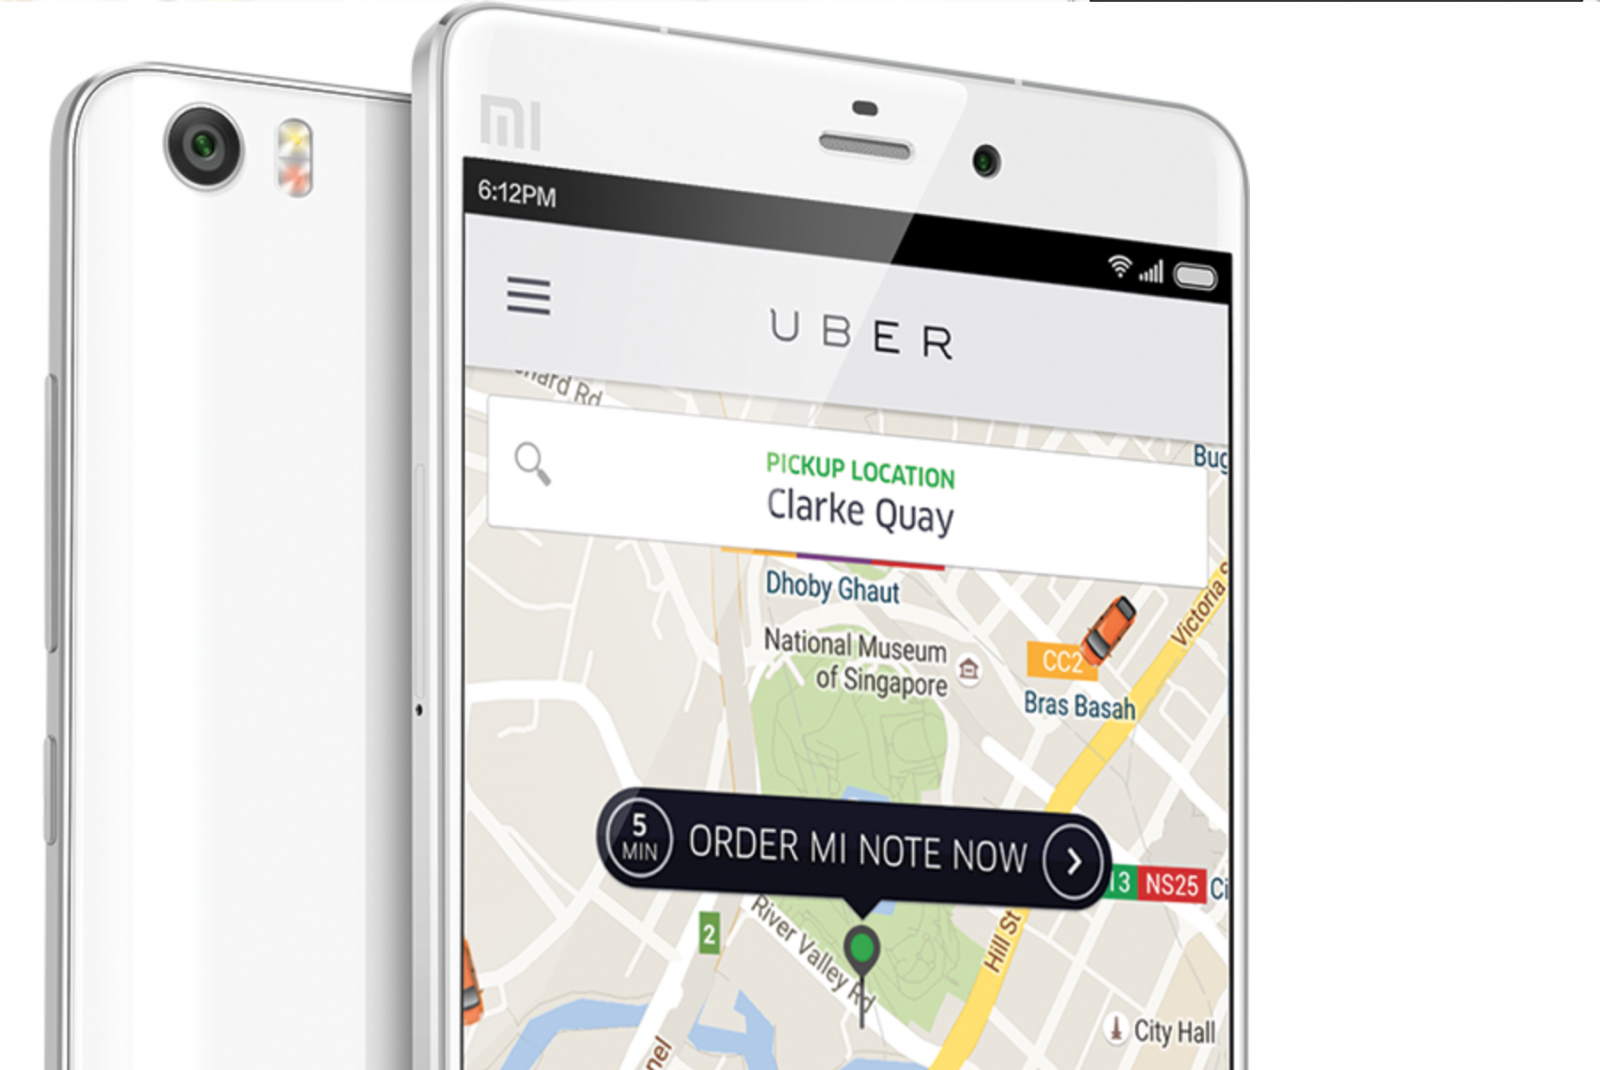 Order Xiaomi Mi Note through Uber